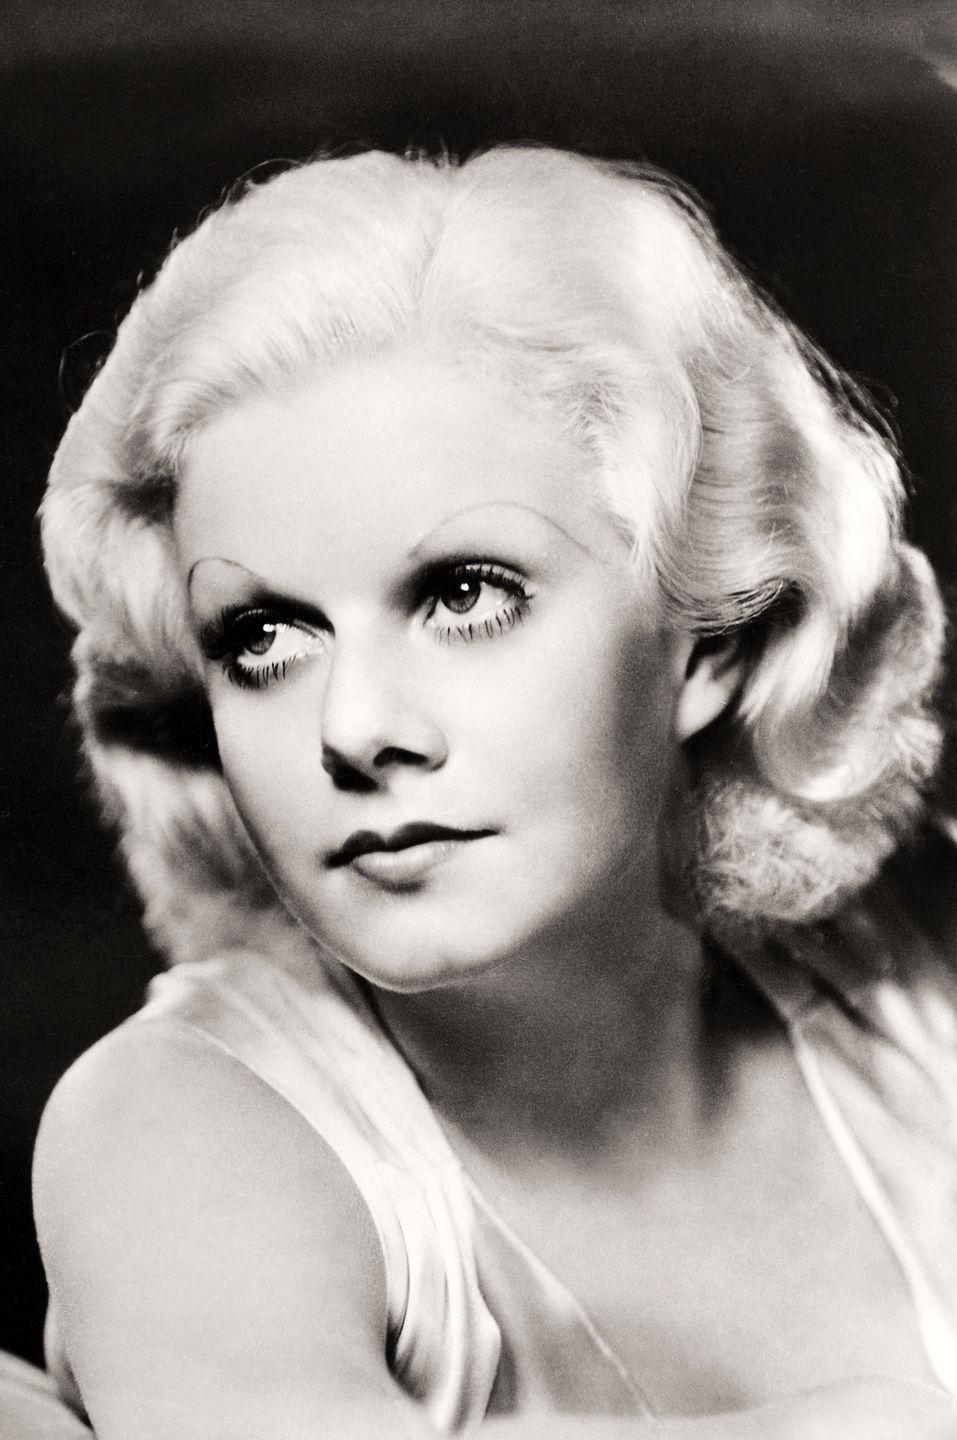 <p>Similar to finger waves, the Marcel wave was a highly styled wave worn by the likes of Jean Harlow, among many other actresses. Hairdresser Marcel Grateau is often credited for inventing the technique, which involved using hot curling tongs to give hair deep, defined waves.</p>